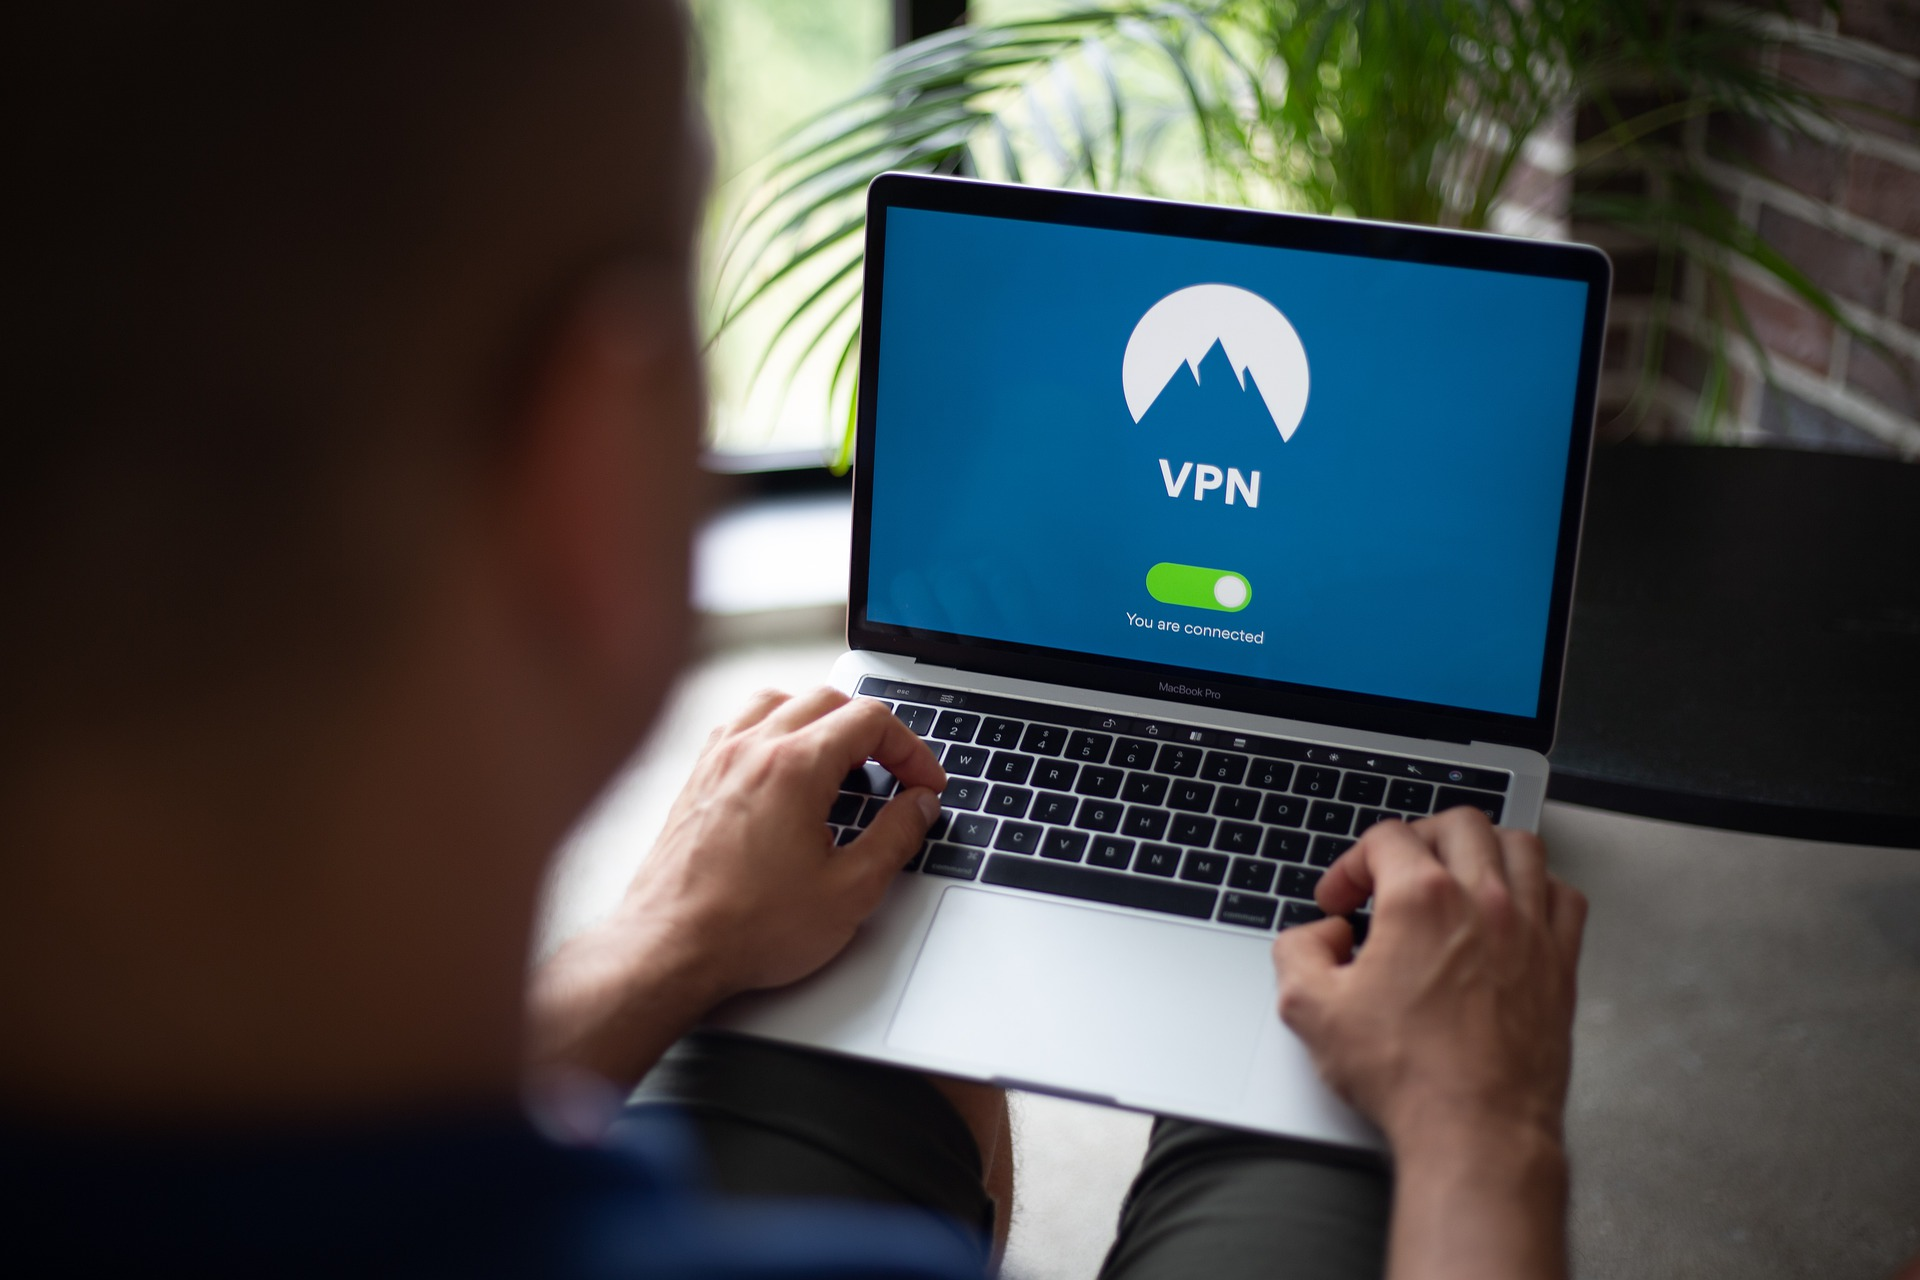 Beneficios de una VPN